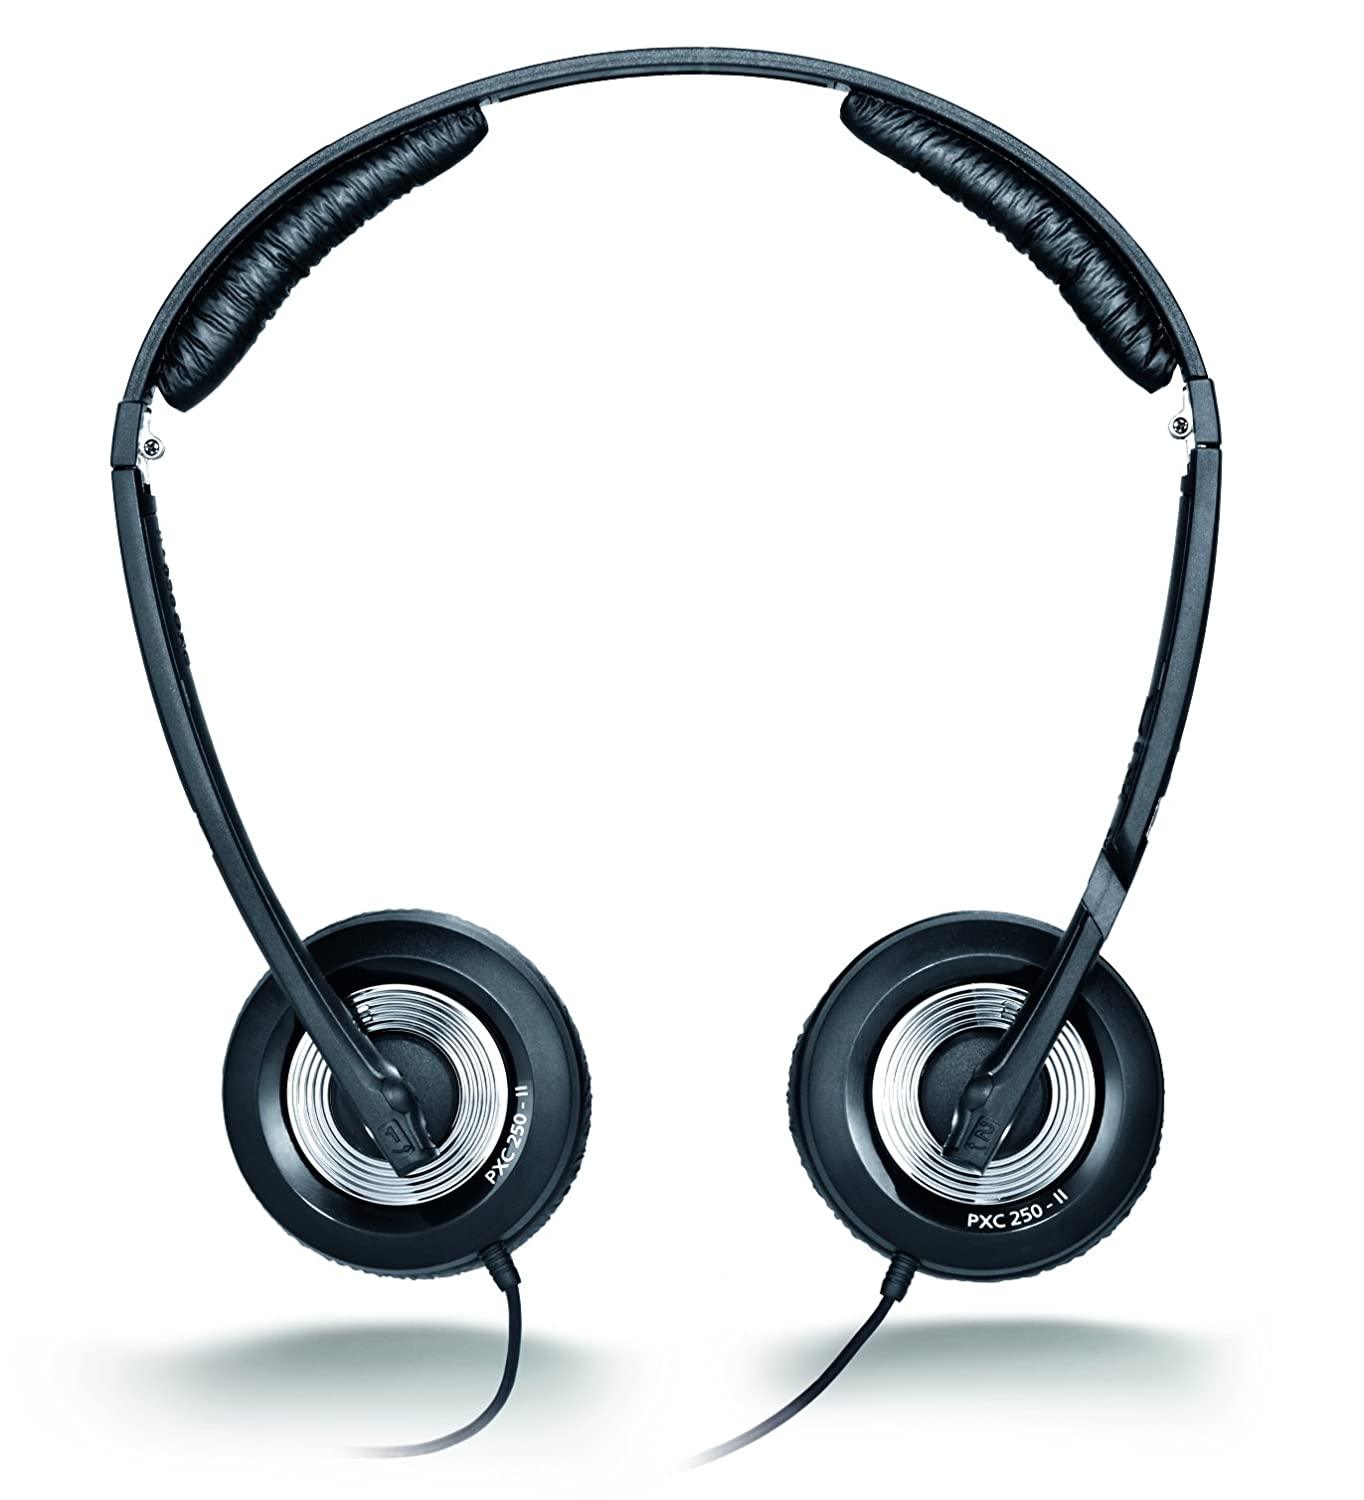 Sennheiser PXC 250 II Collapsible Noise-Canceling